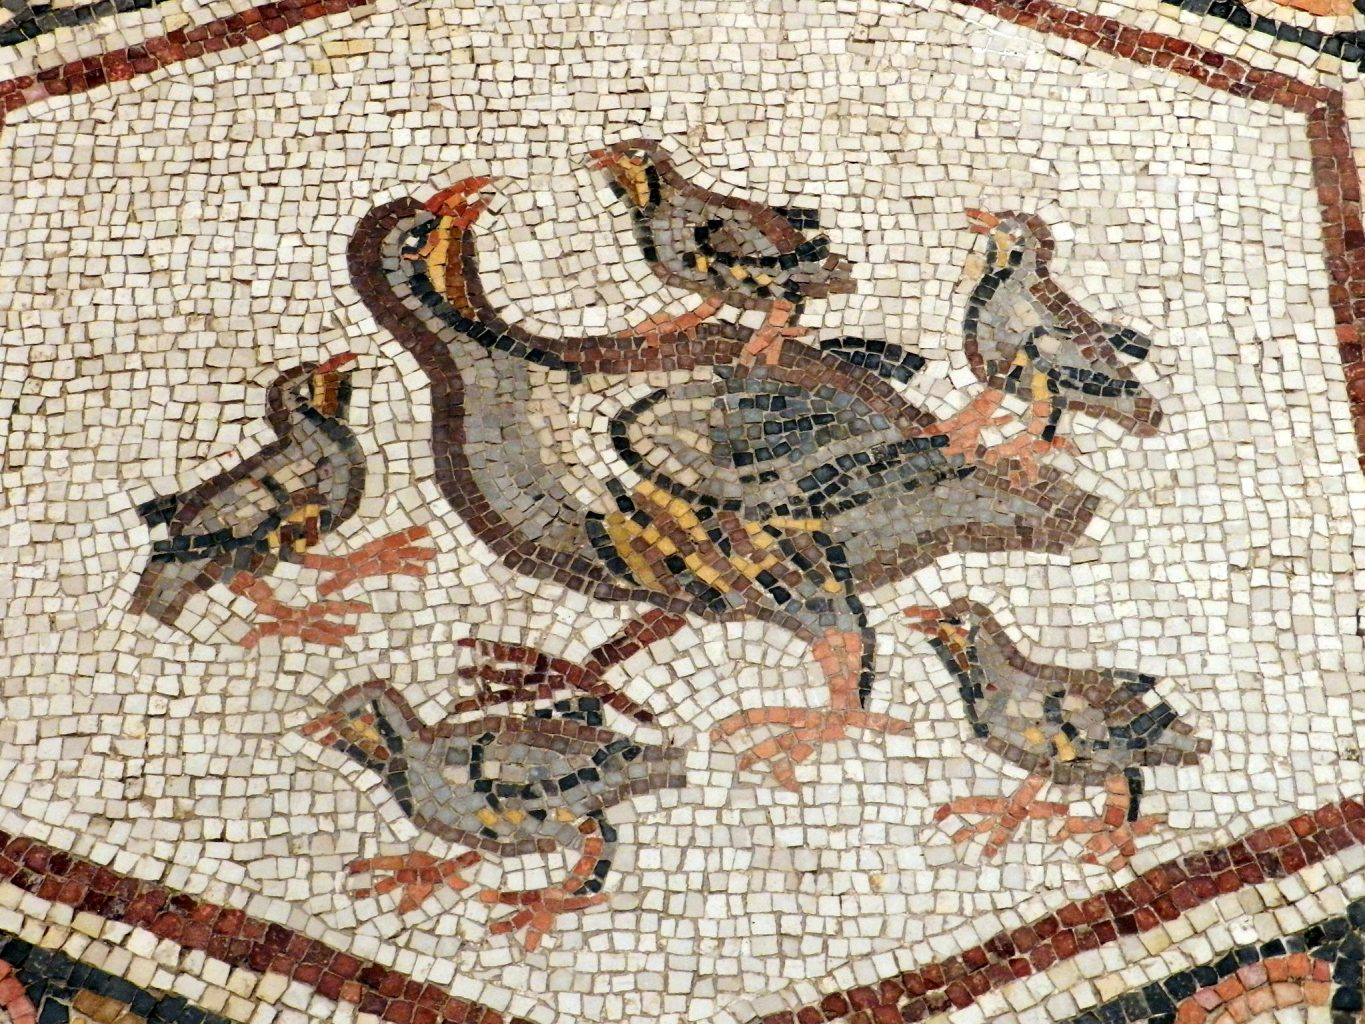 The Lod Roman Mosaic